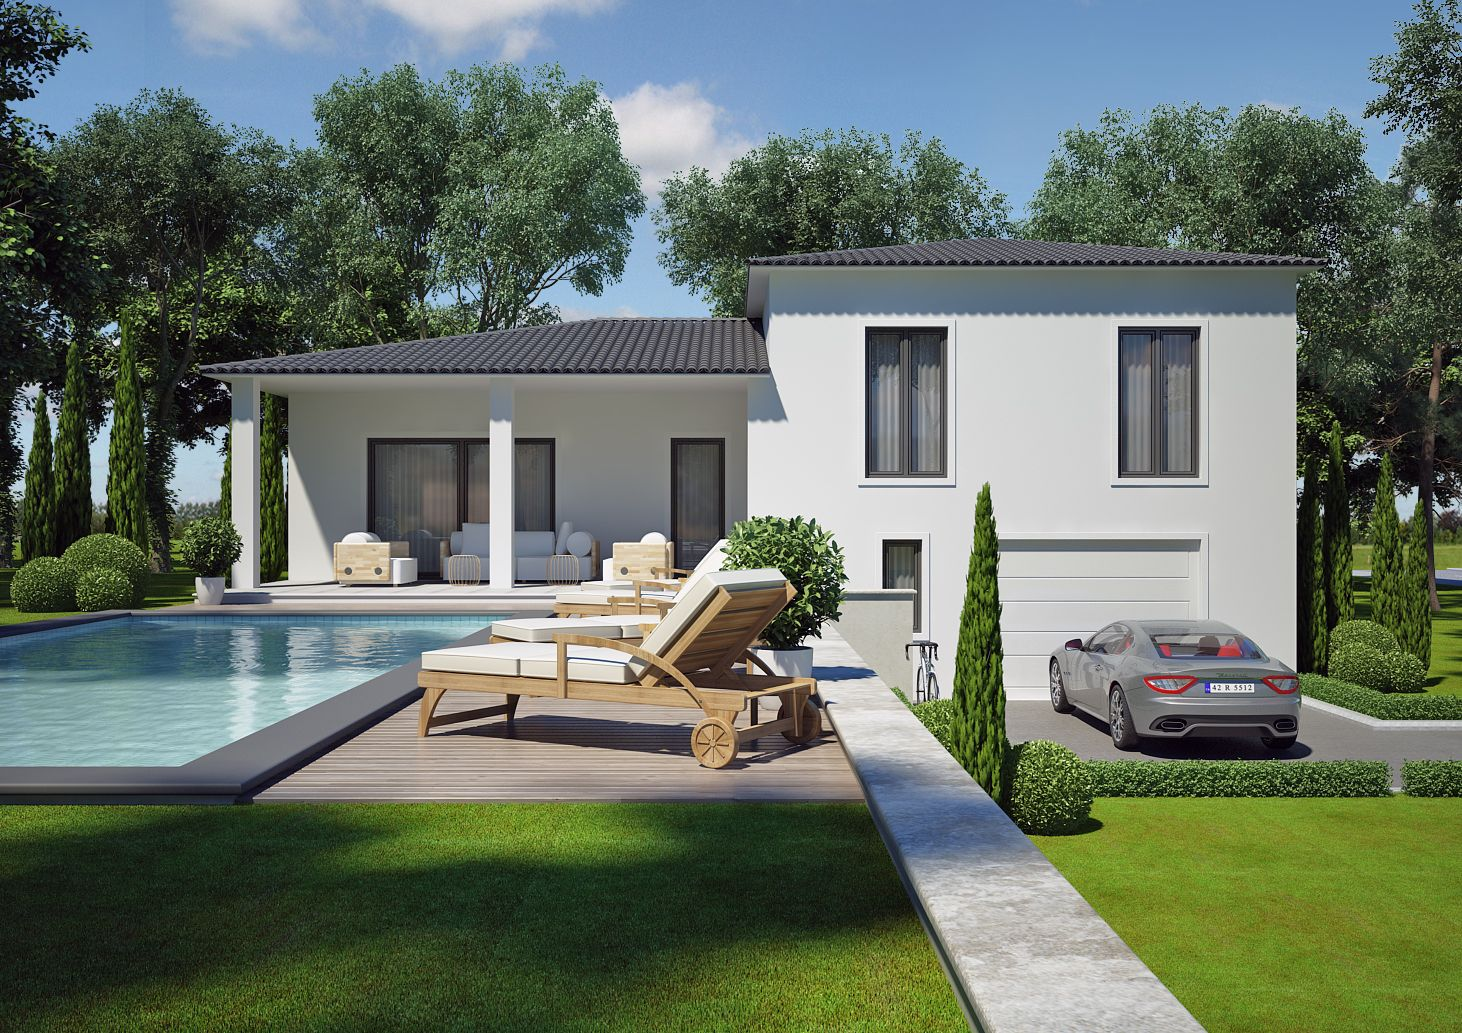 Mod le villa contemporaine 100m2 demi tage agate azur for Villa contemporaine plan